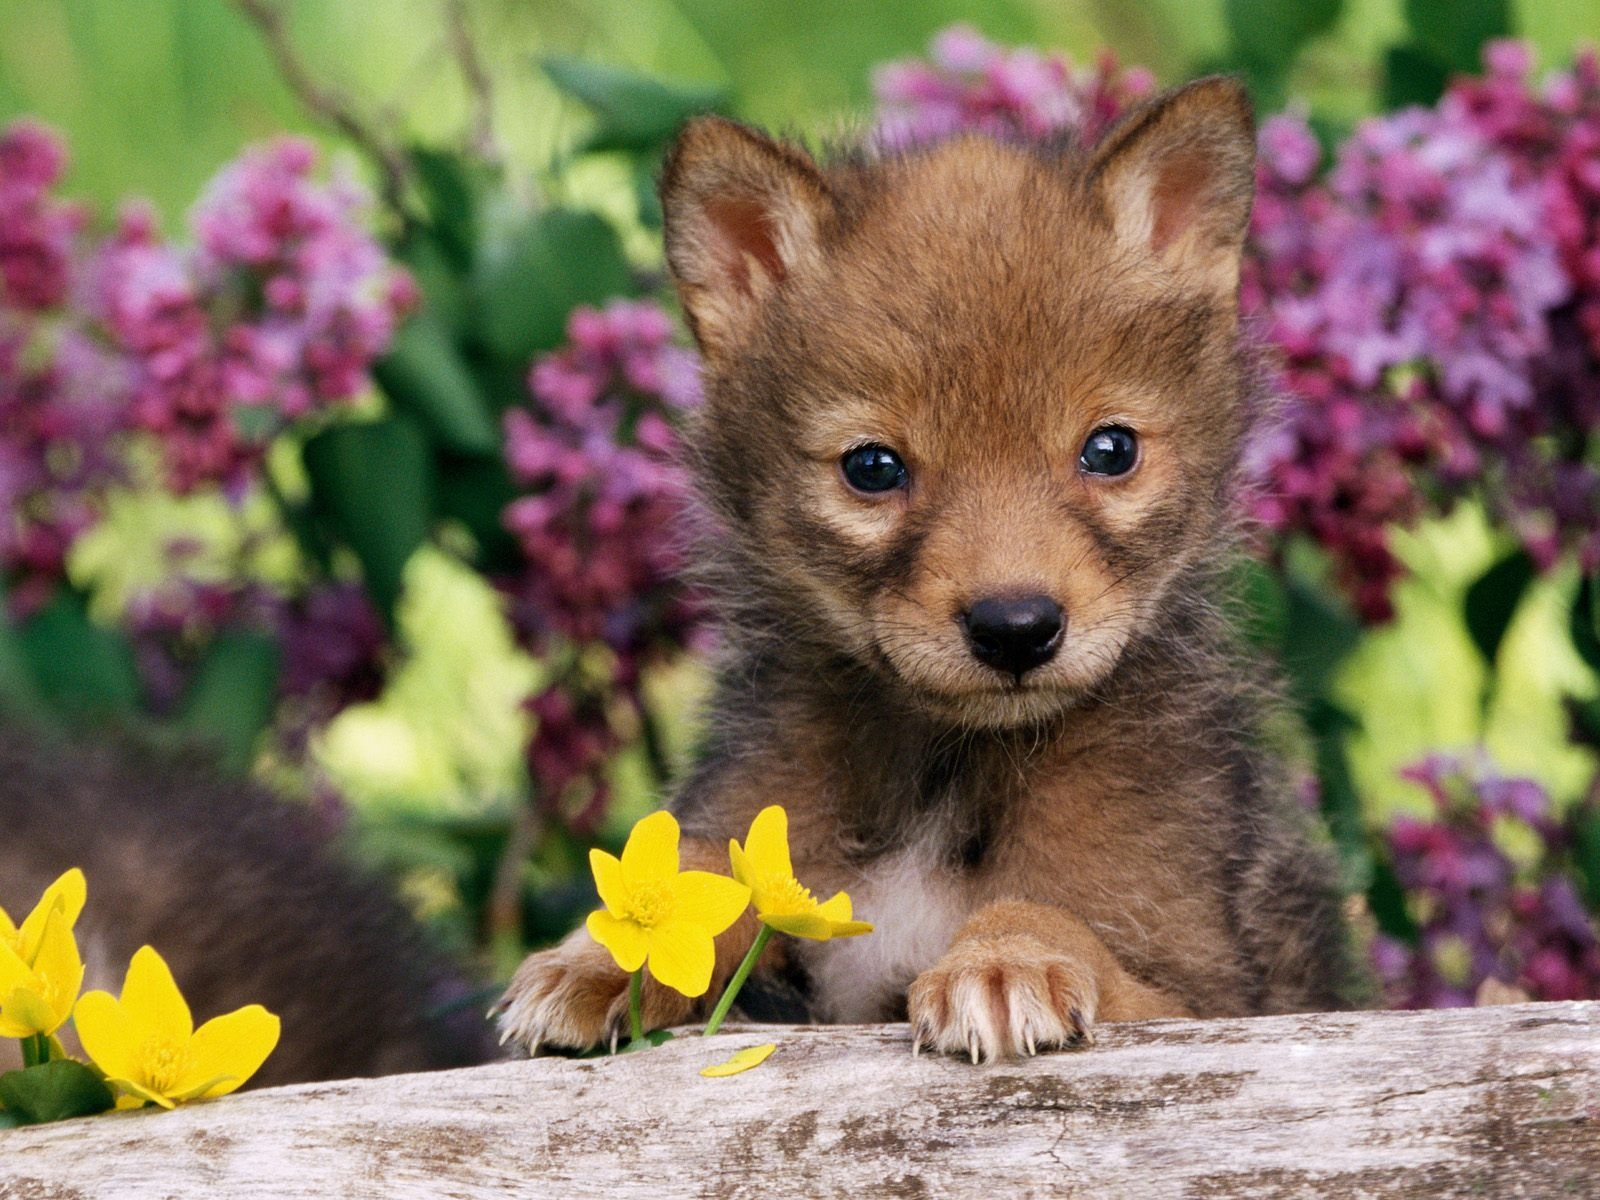 Baby animals wallpapers for free download about (935) wallpapers